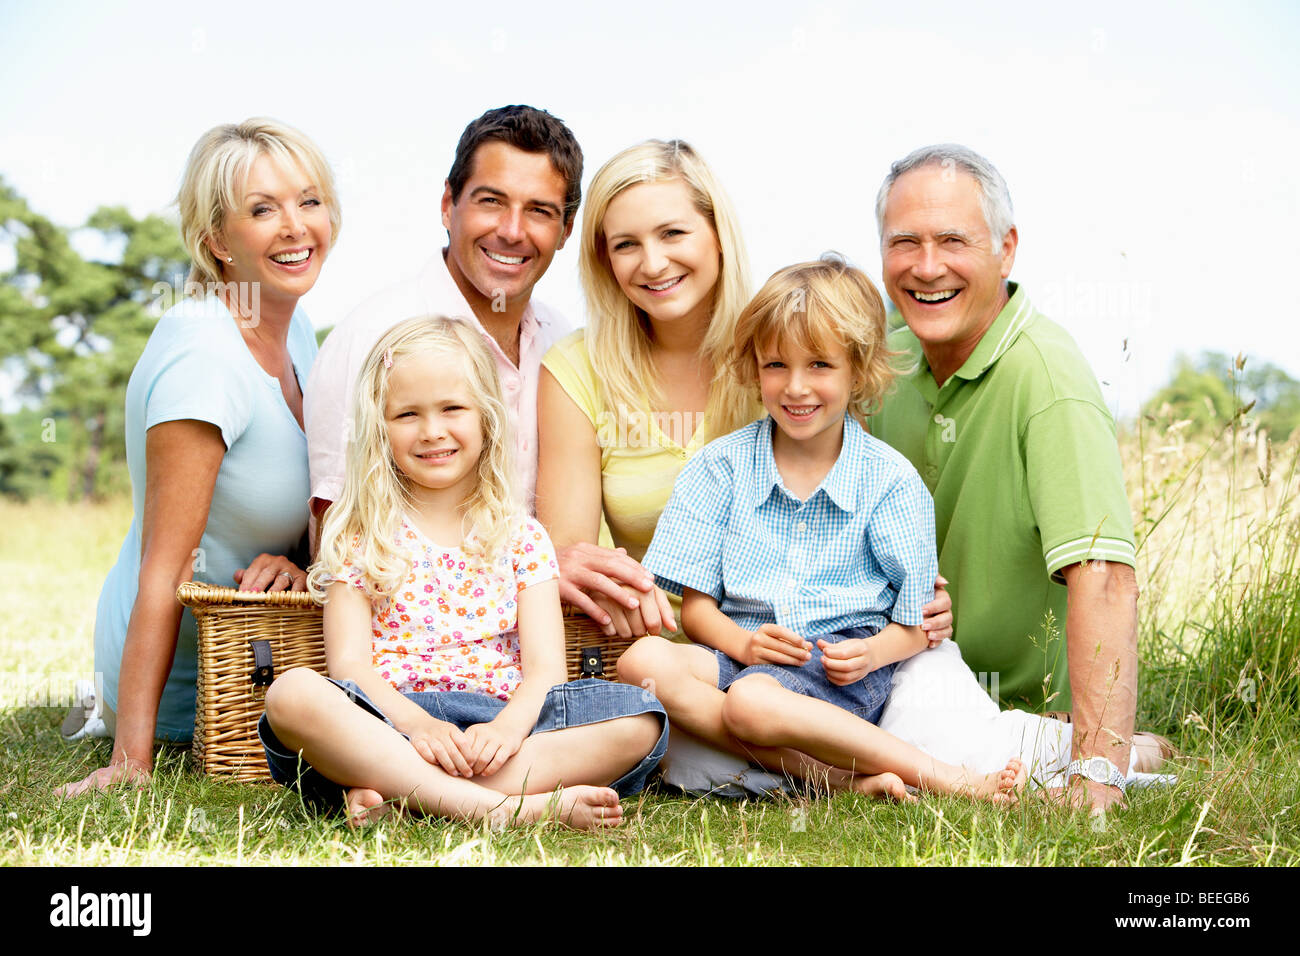 Family having picnic in countryside - Stock Image